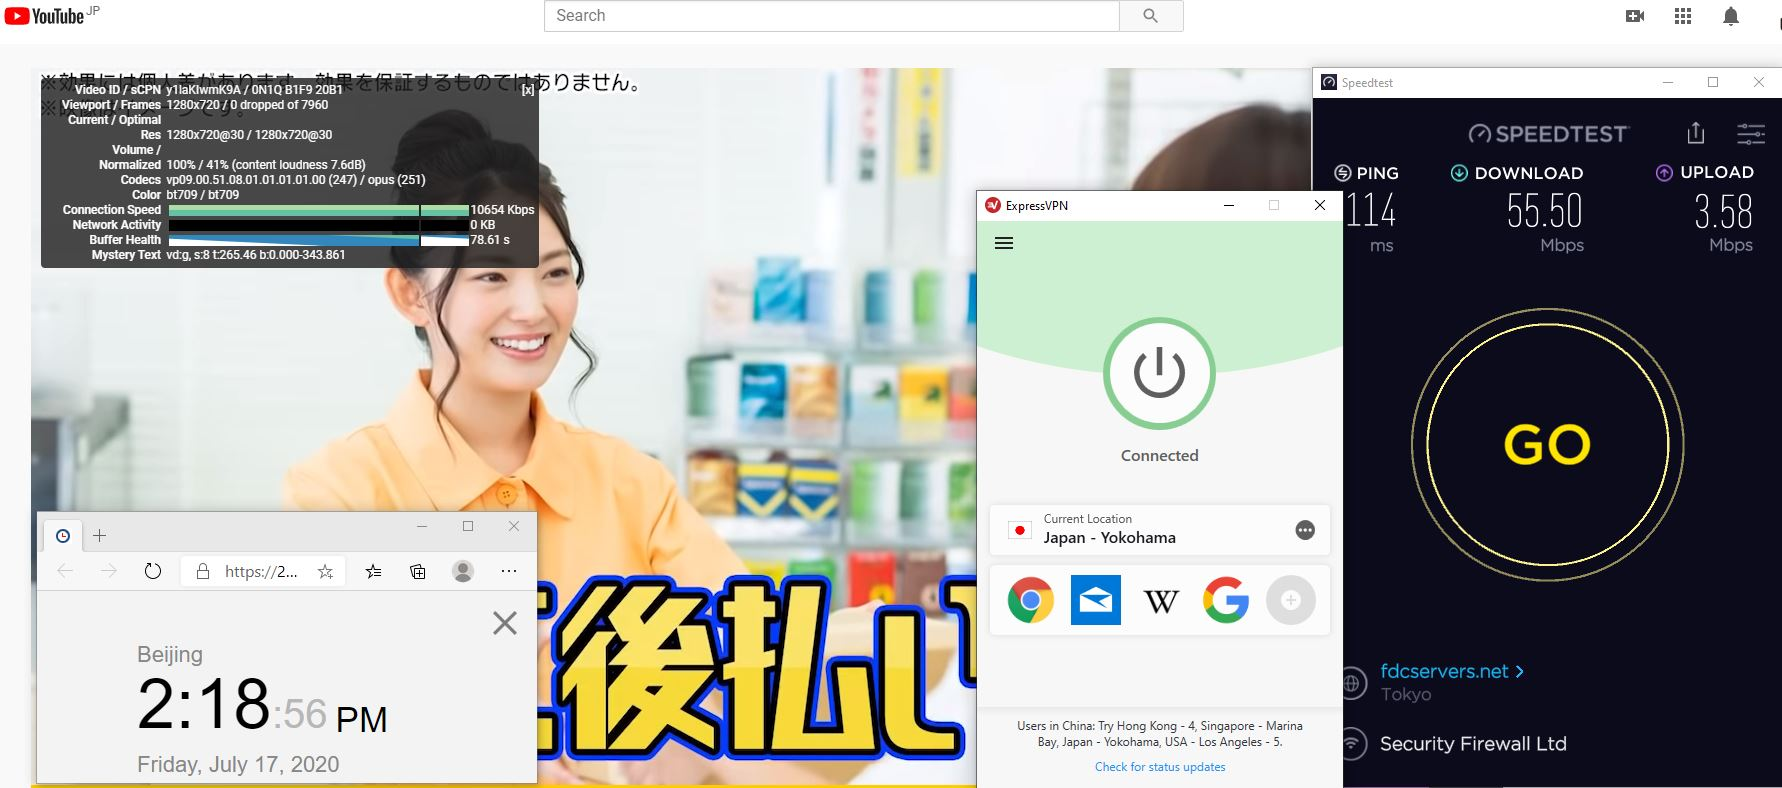 Windows10 ExpressVPN Auto Japan - Yokohama 中国VPN 翻墙 科学上网 测速-20200717